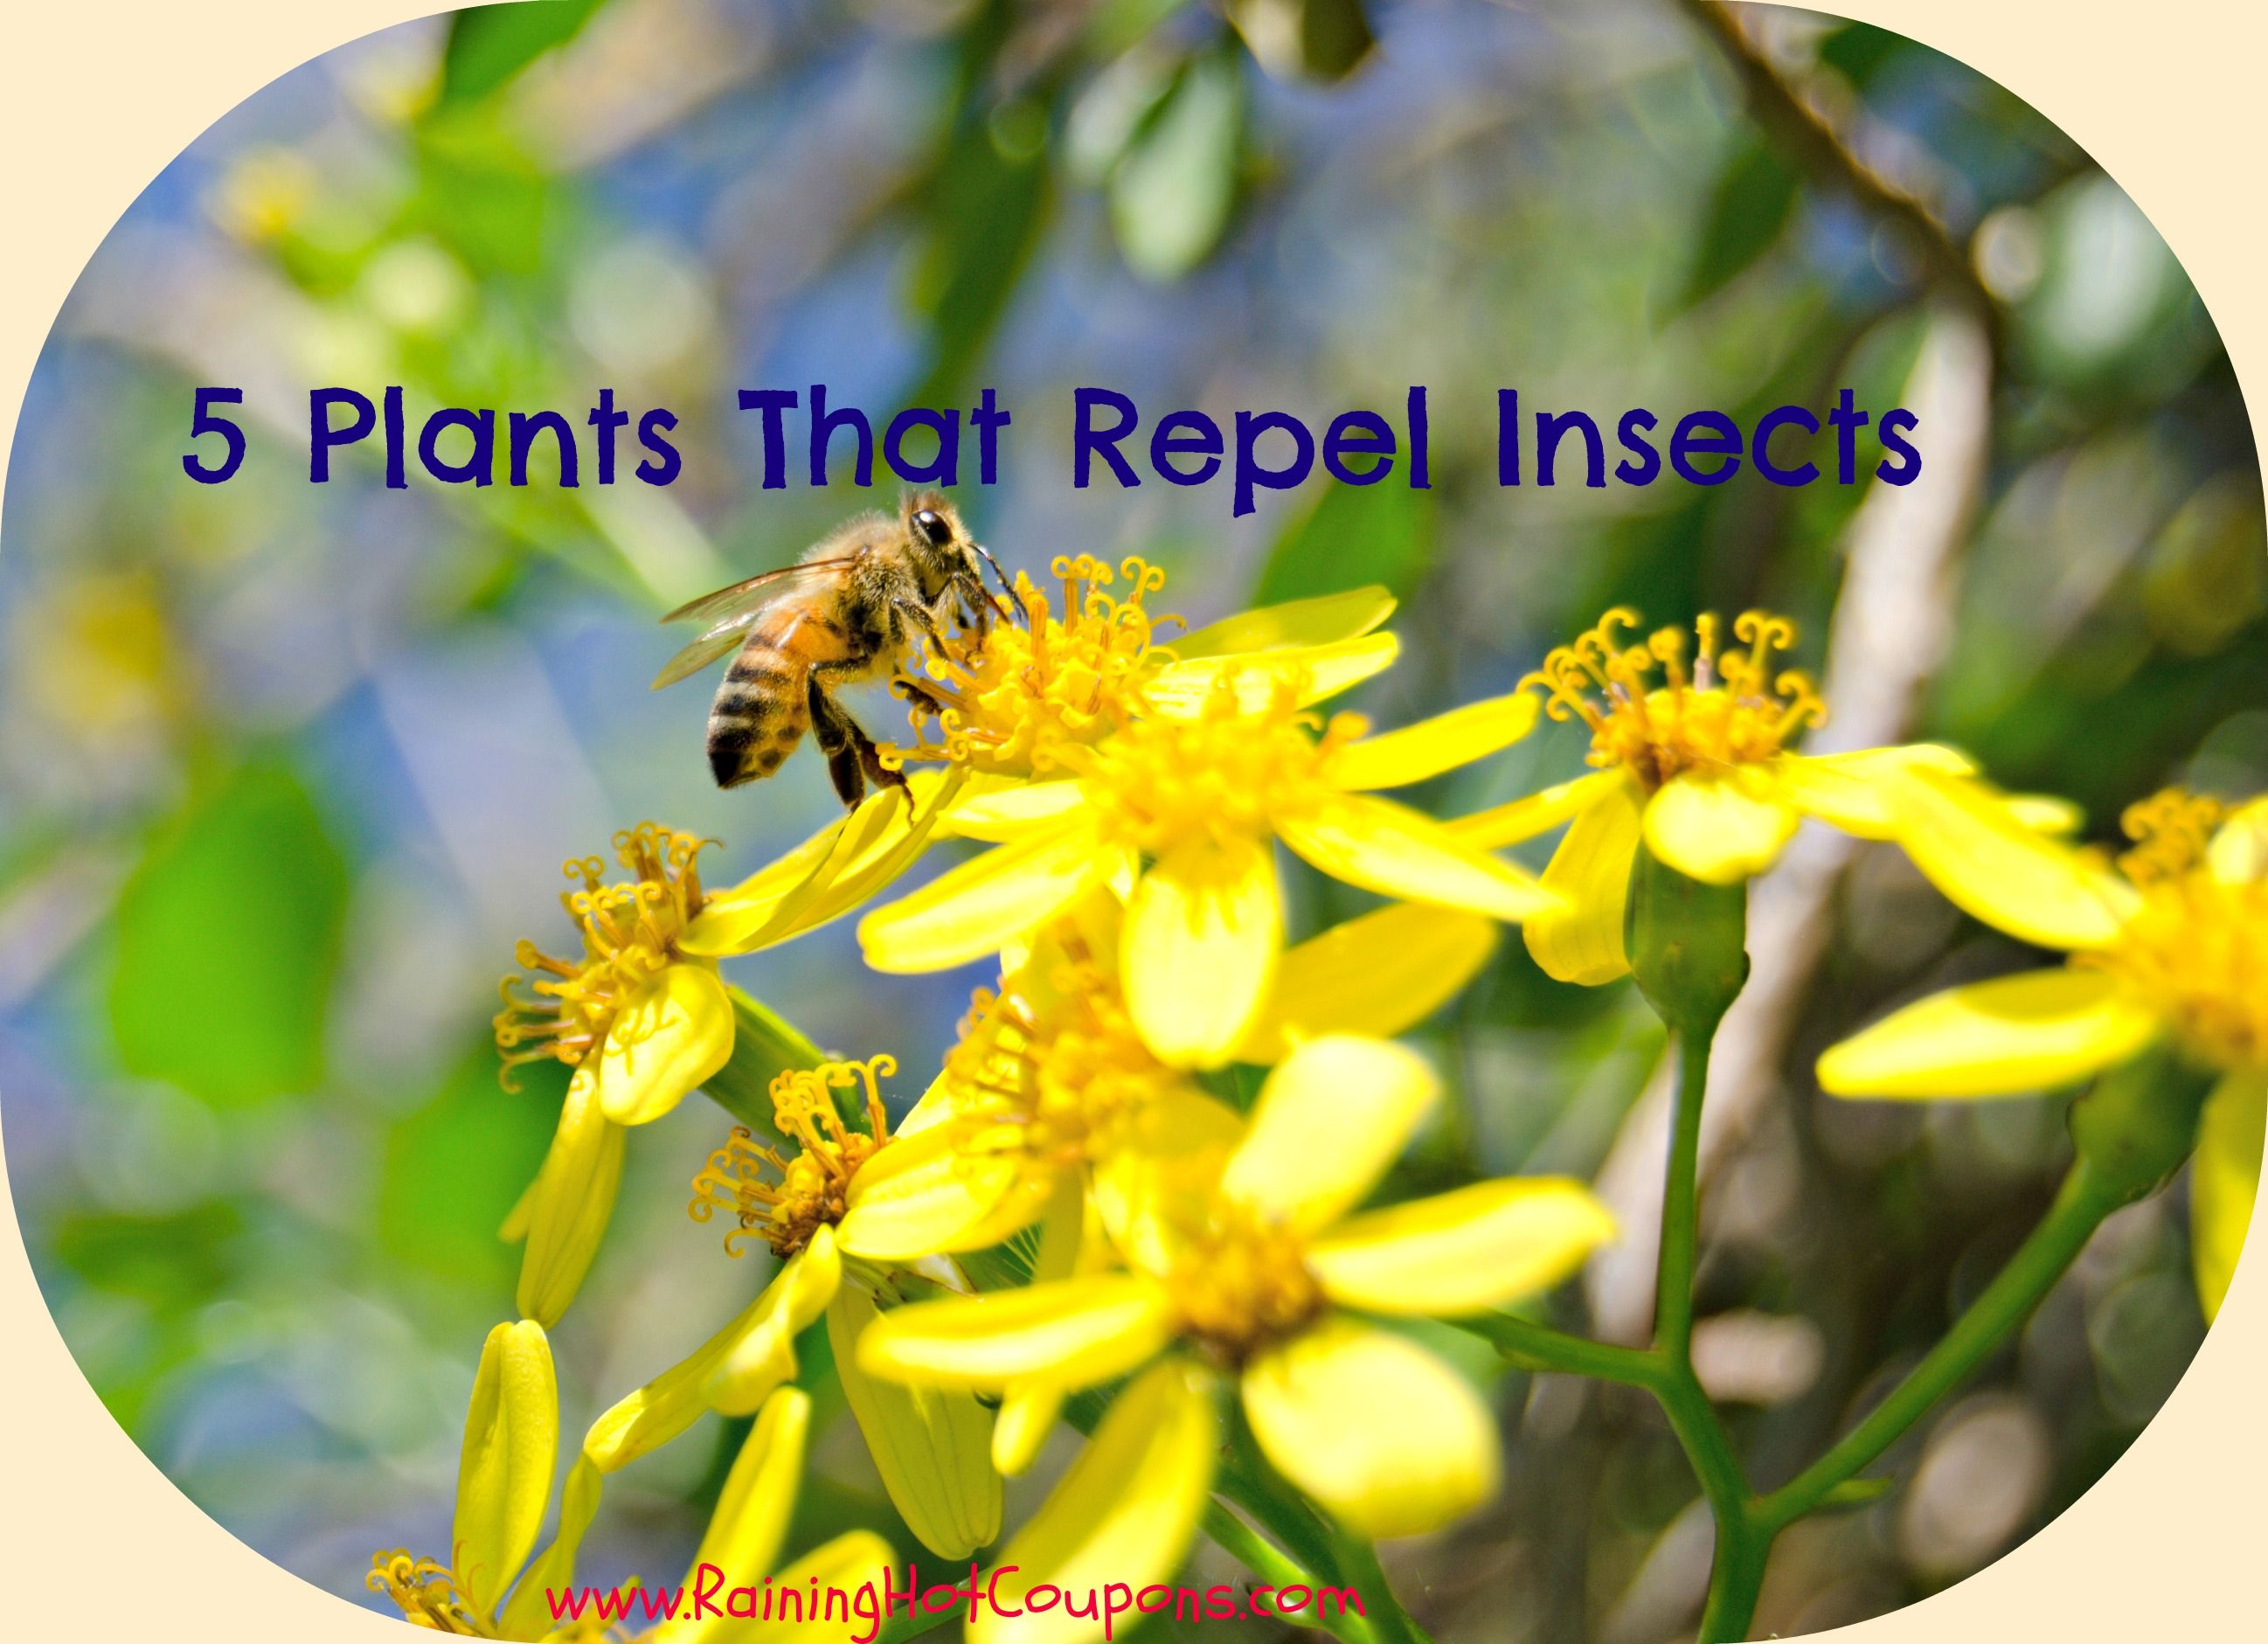 5 Plants That Repel Insects Insect repellent plants